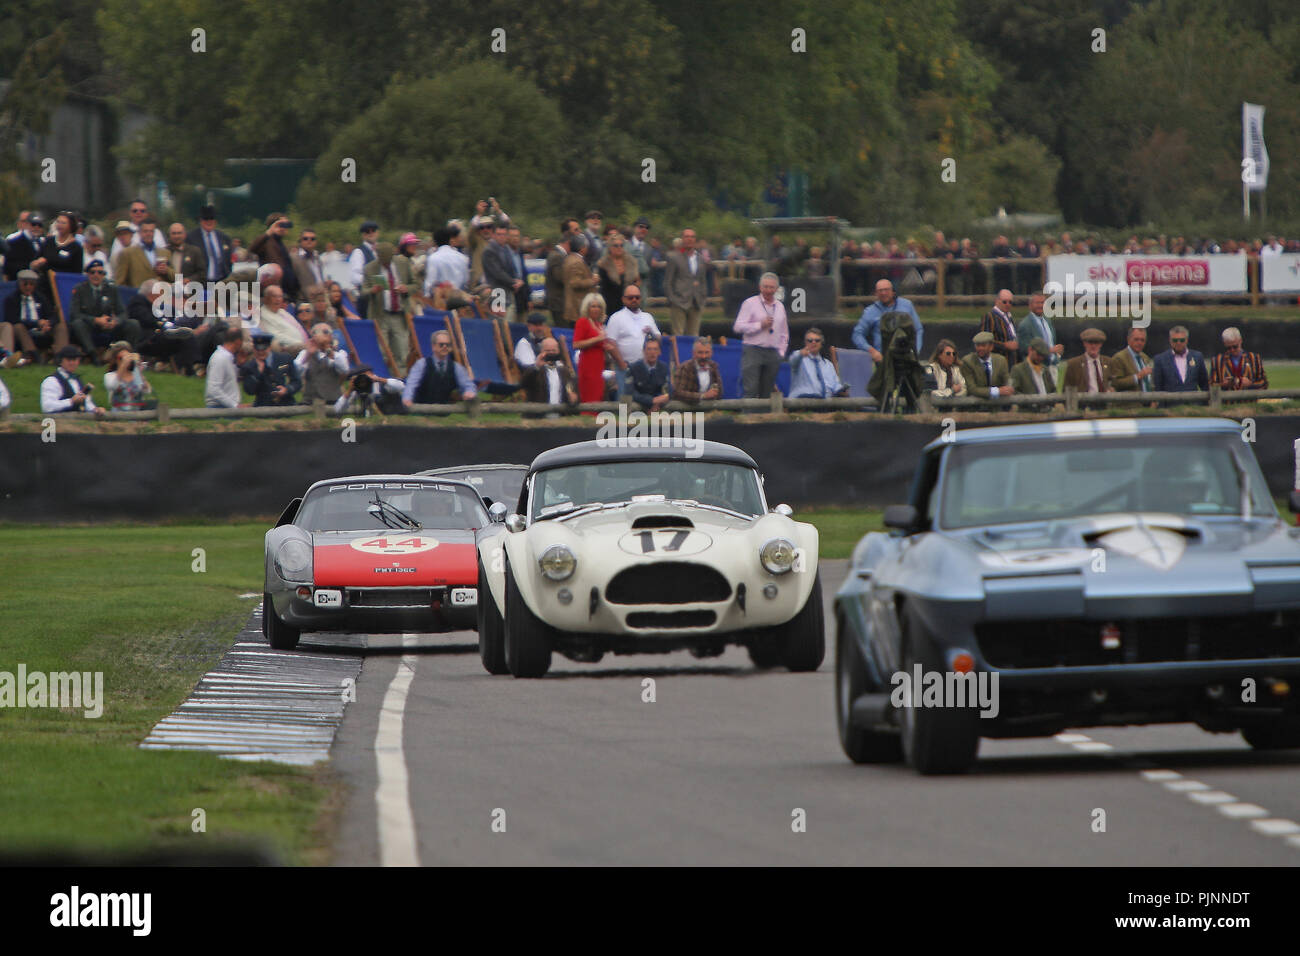 Goodwood, West Sussex, UK. 8th September 2018. RAC TT celebration at the 20th Goodwood Revival in Goodwood, West Sussex, UK. © Malcolm Greig/Alamy Live News Stock Photo